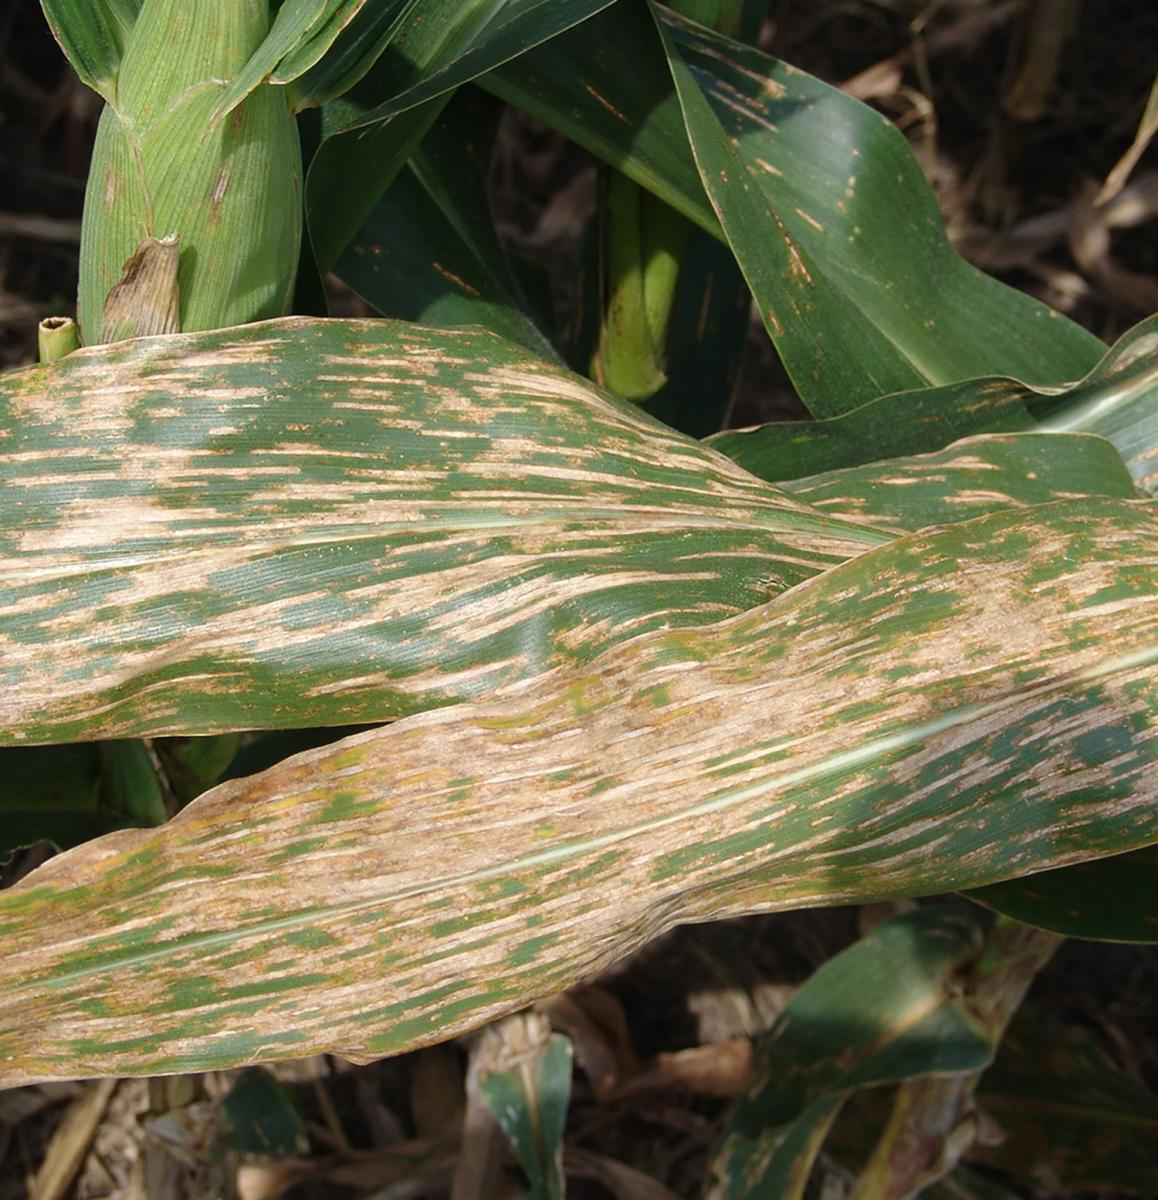 Corn leaf with severe gray leaf spot